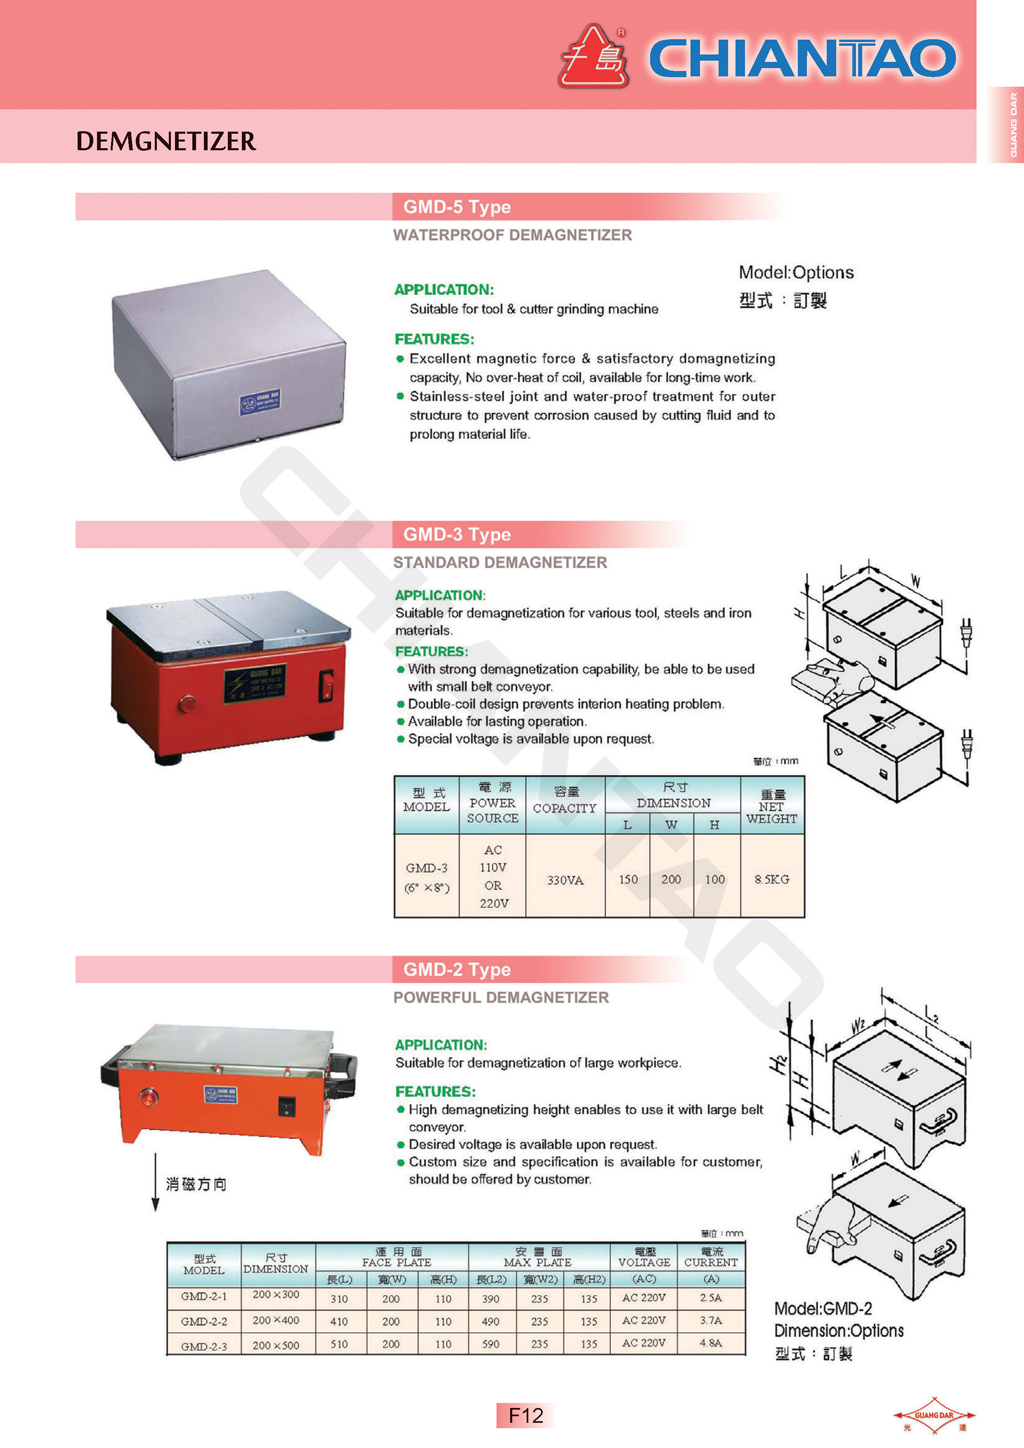 Magnetic Chuck Wiring Diagram Page F11 Gmd 2 3 5 Type Standard Waterproof Powerful Demagnetizer